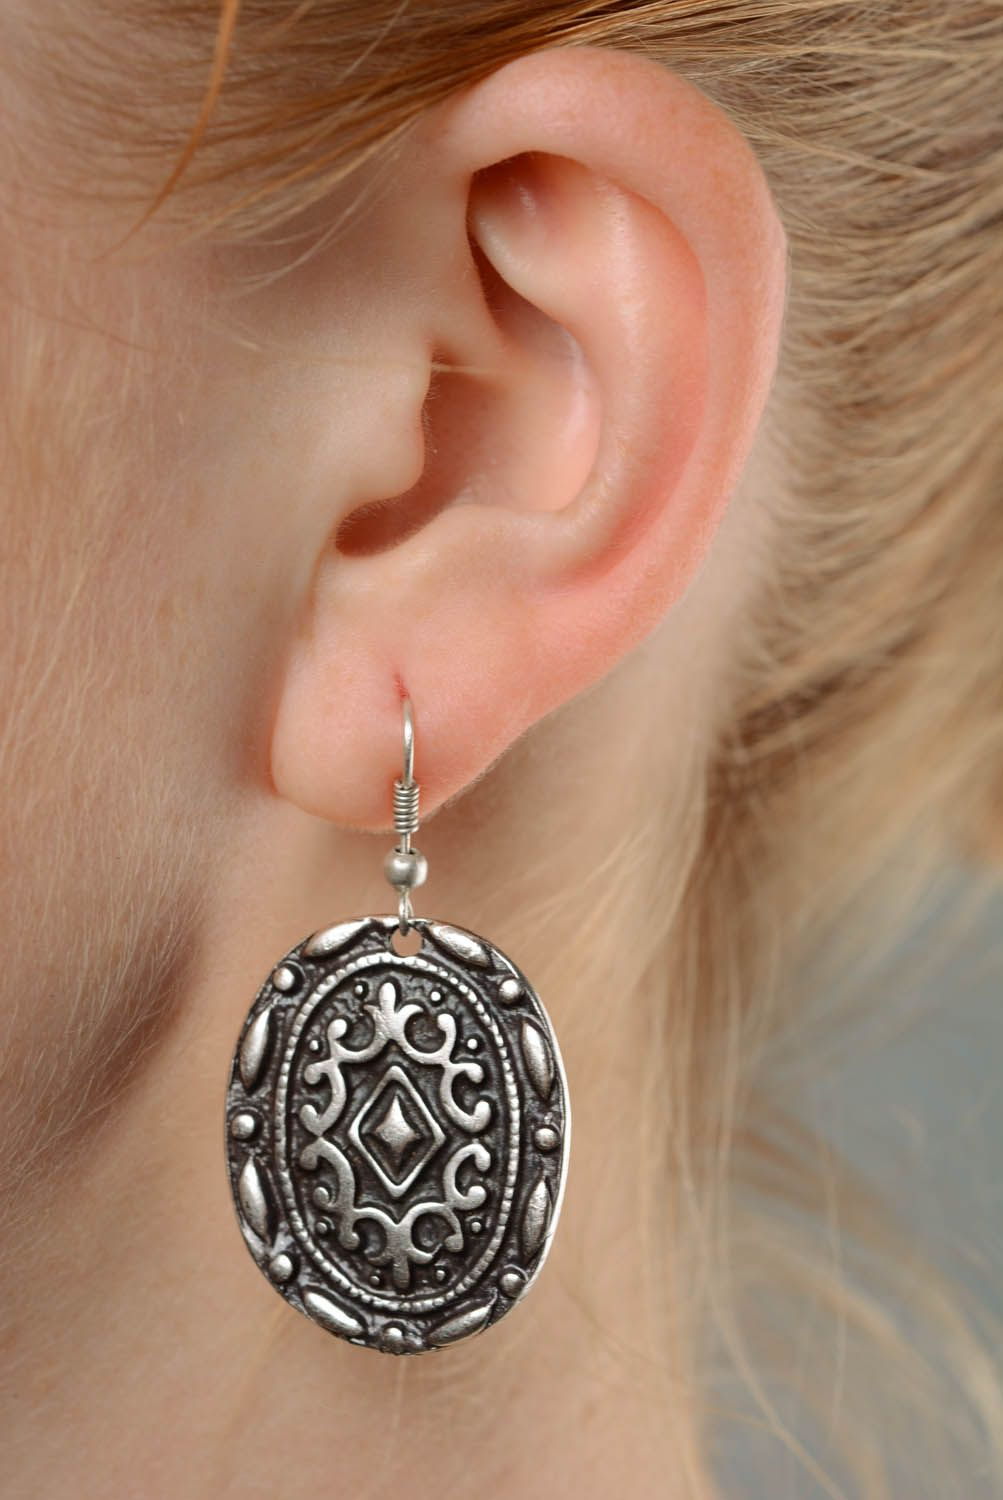 Metal earrings photo 3